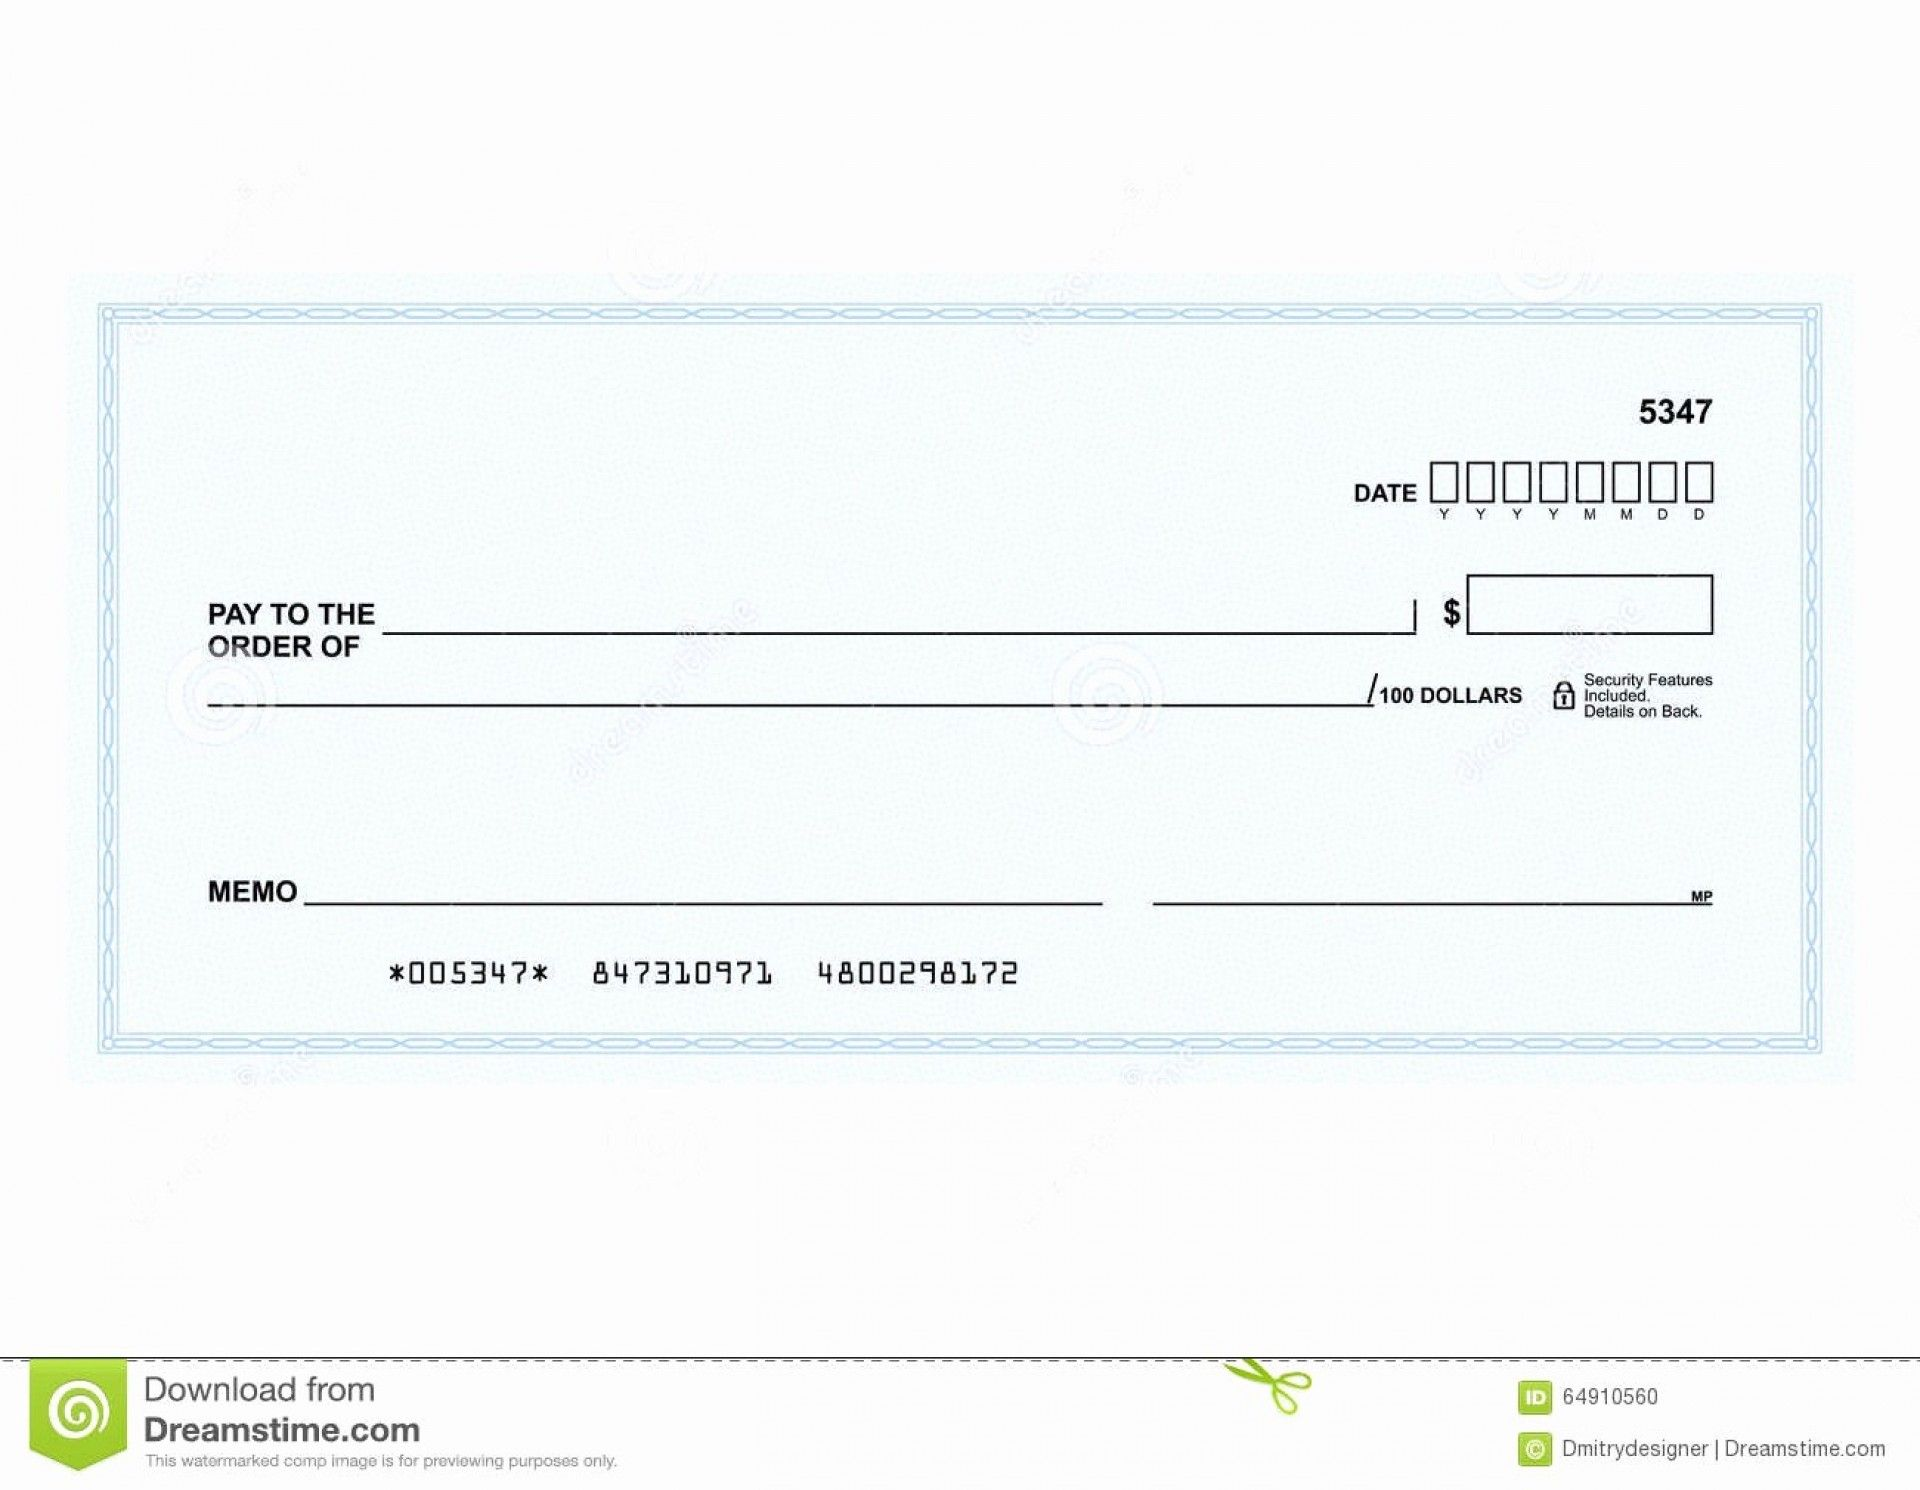 012 Blank Business Check Template Ideas Regarding Fun Awful Intended For Fun Blank Cheque Template Best Sample Business Checks Blank Check Business Template